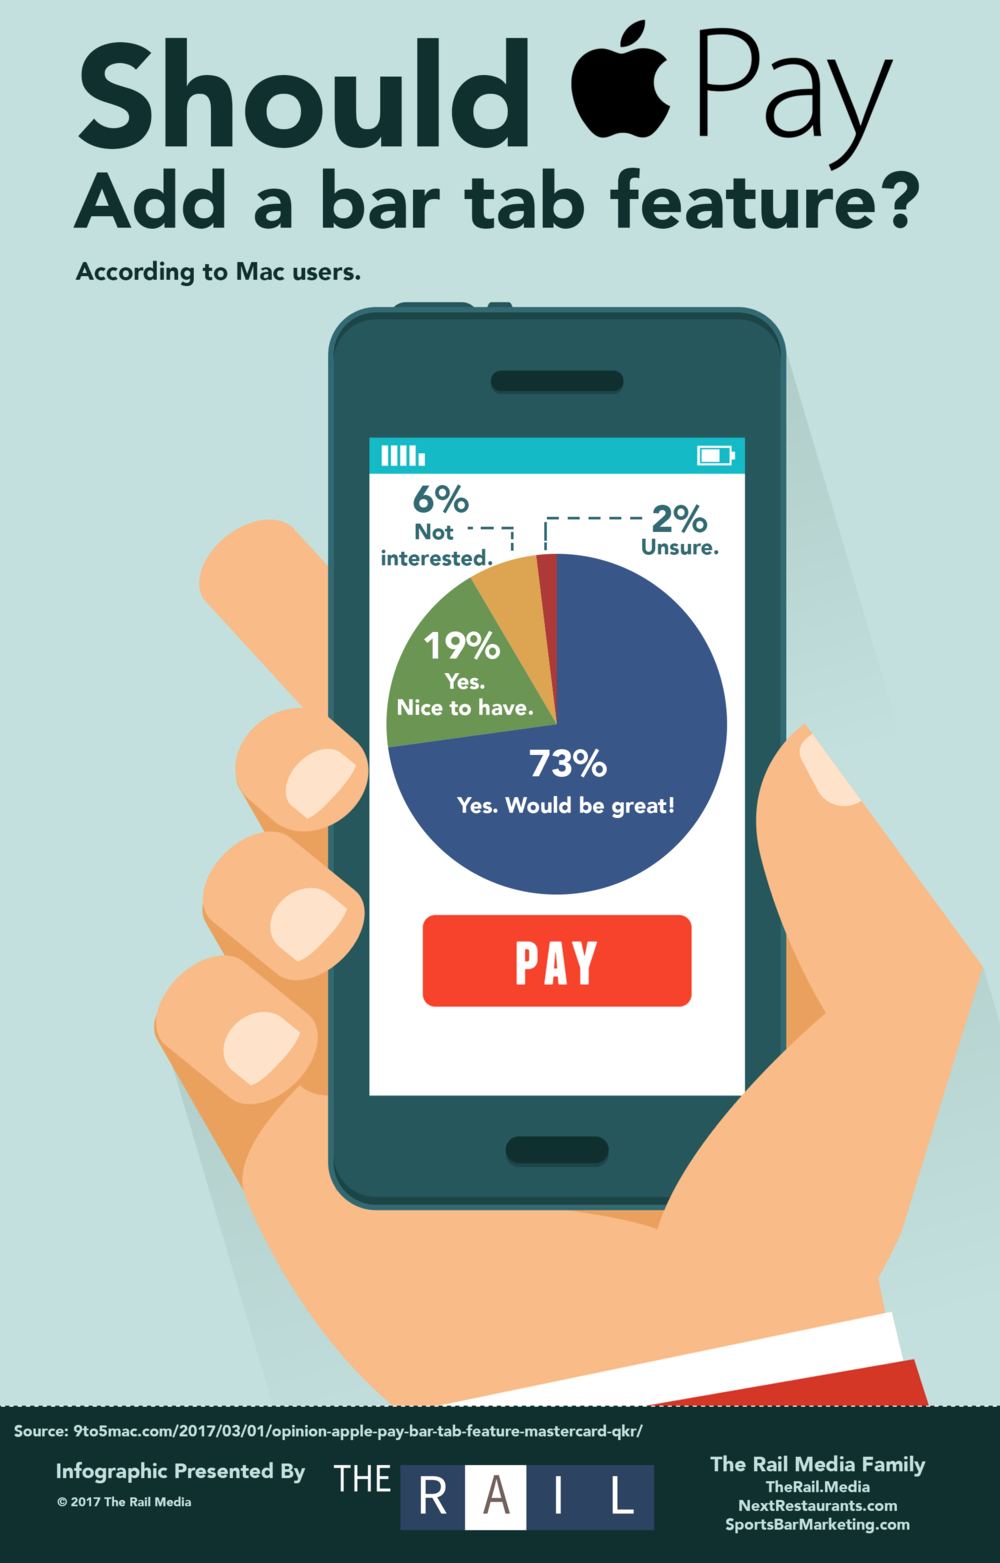 More than 90% of survey respondents want Apple Pay to add a bar tab payment feature.